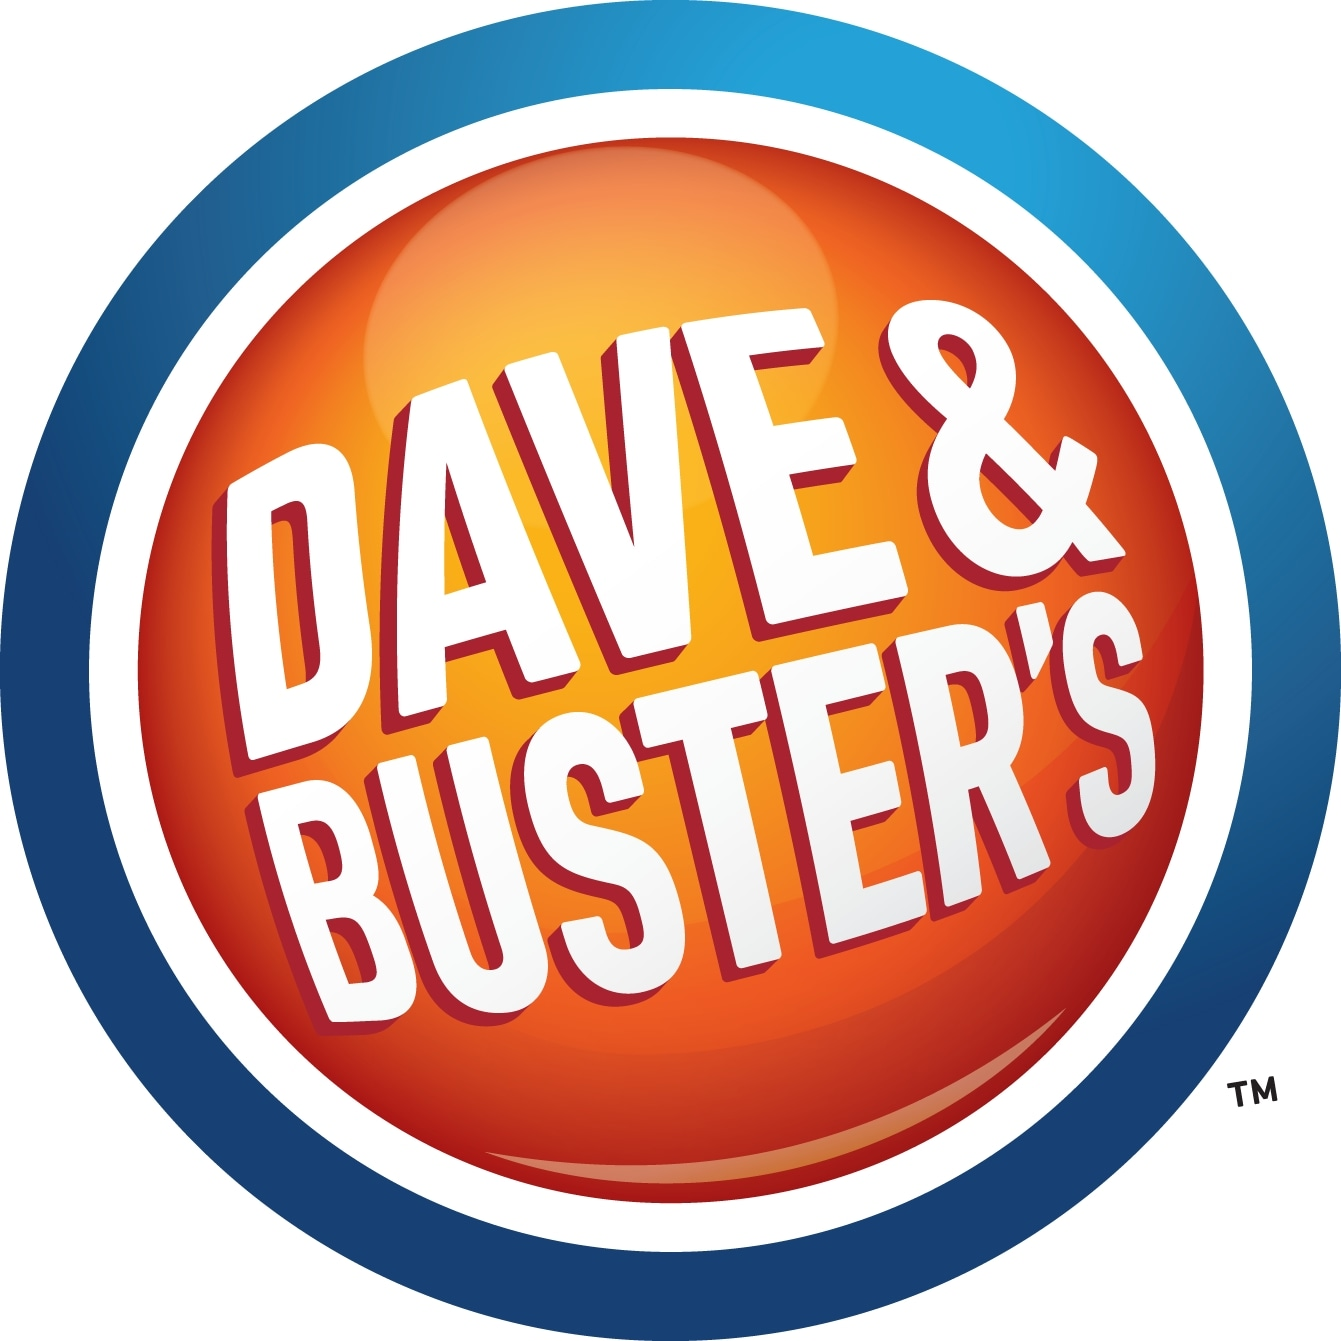 Dave & Buster's Coupons